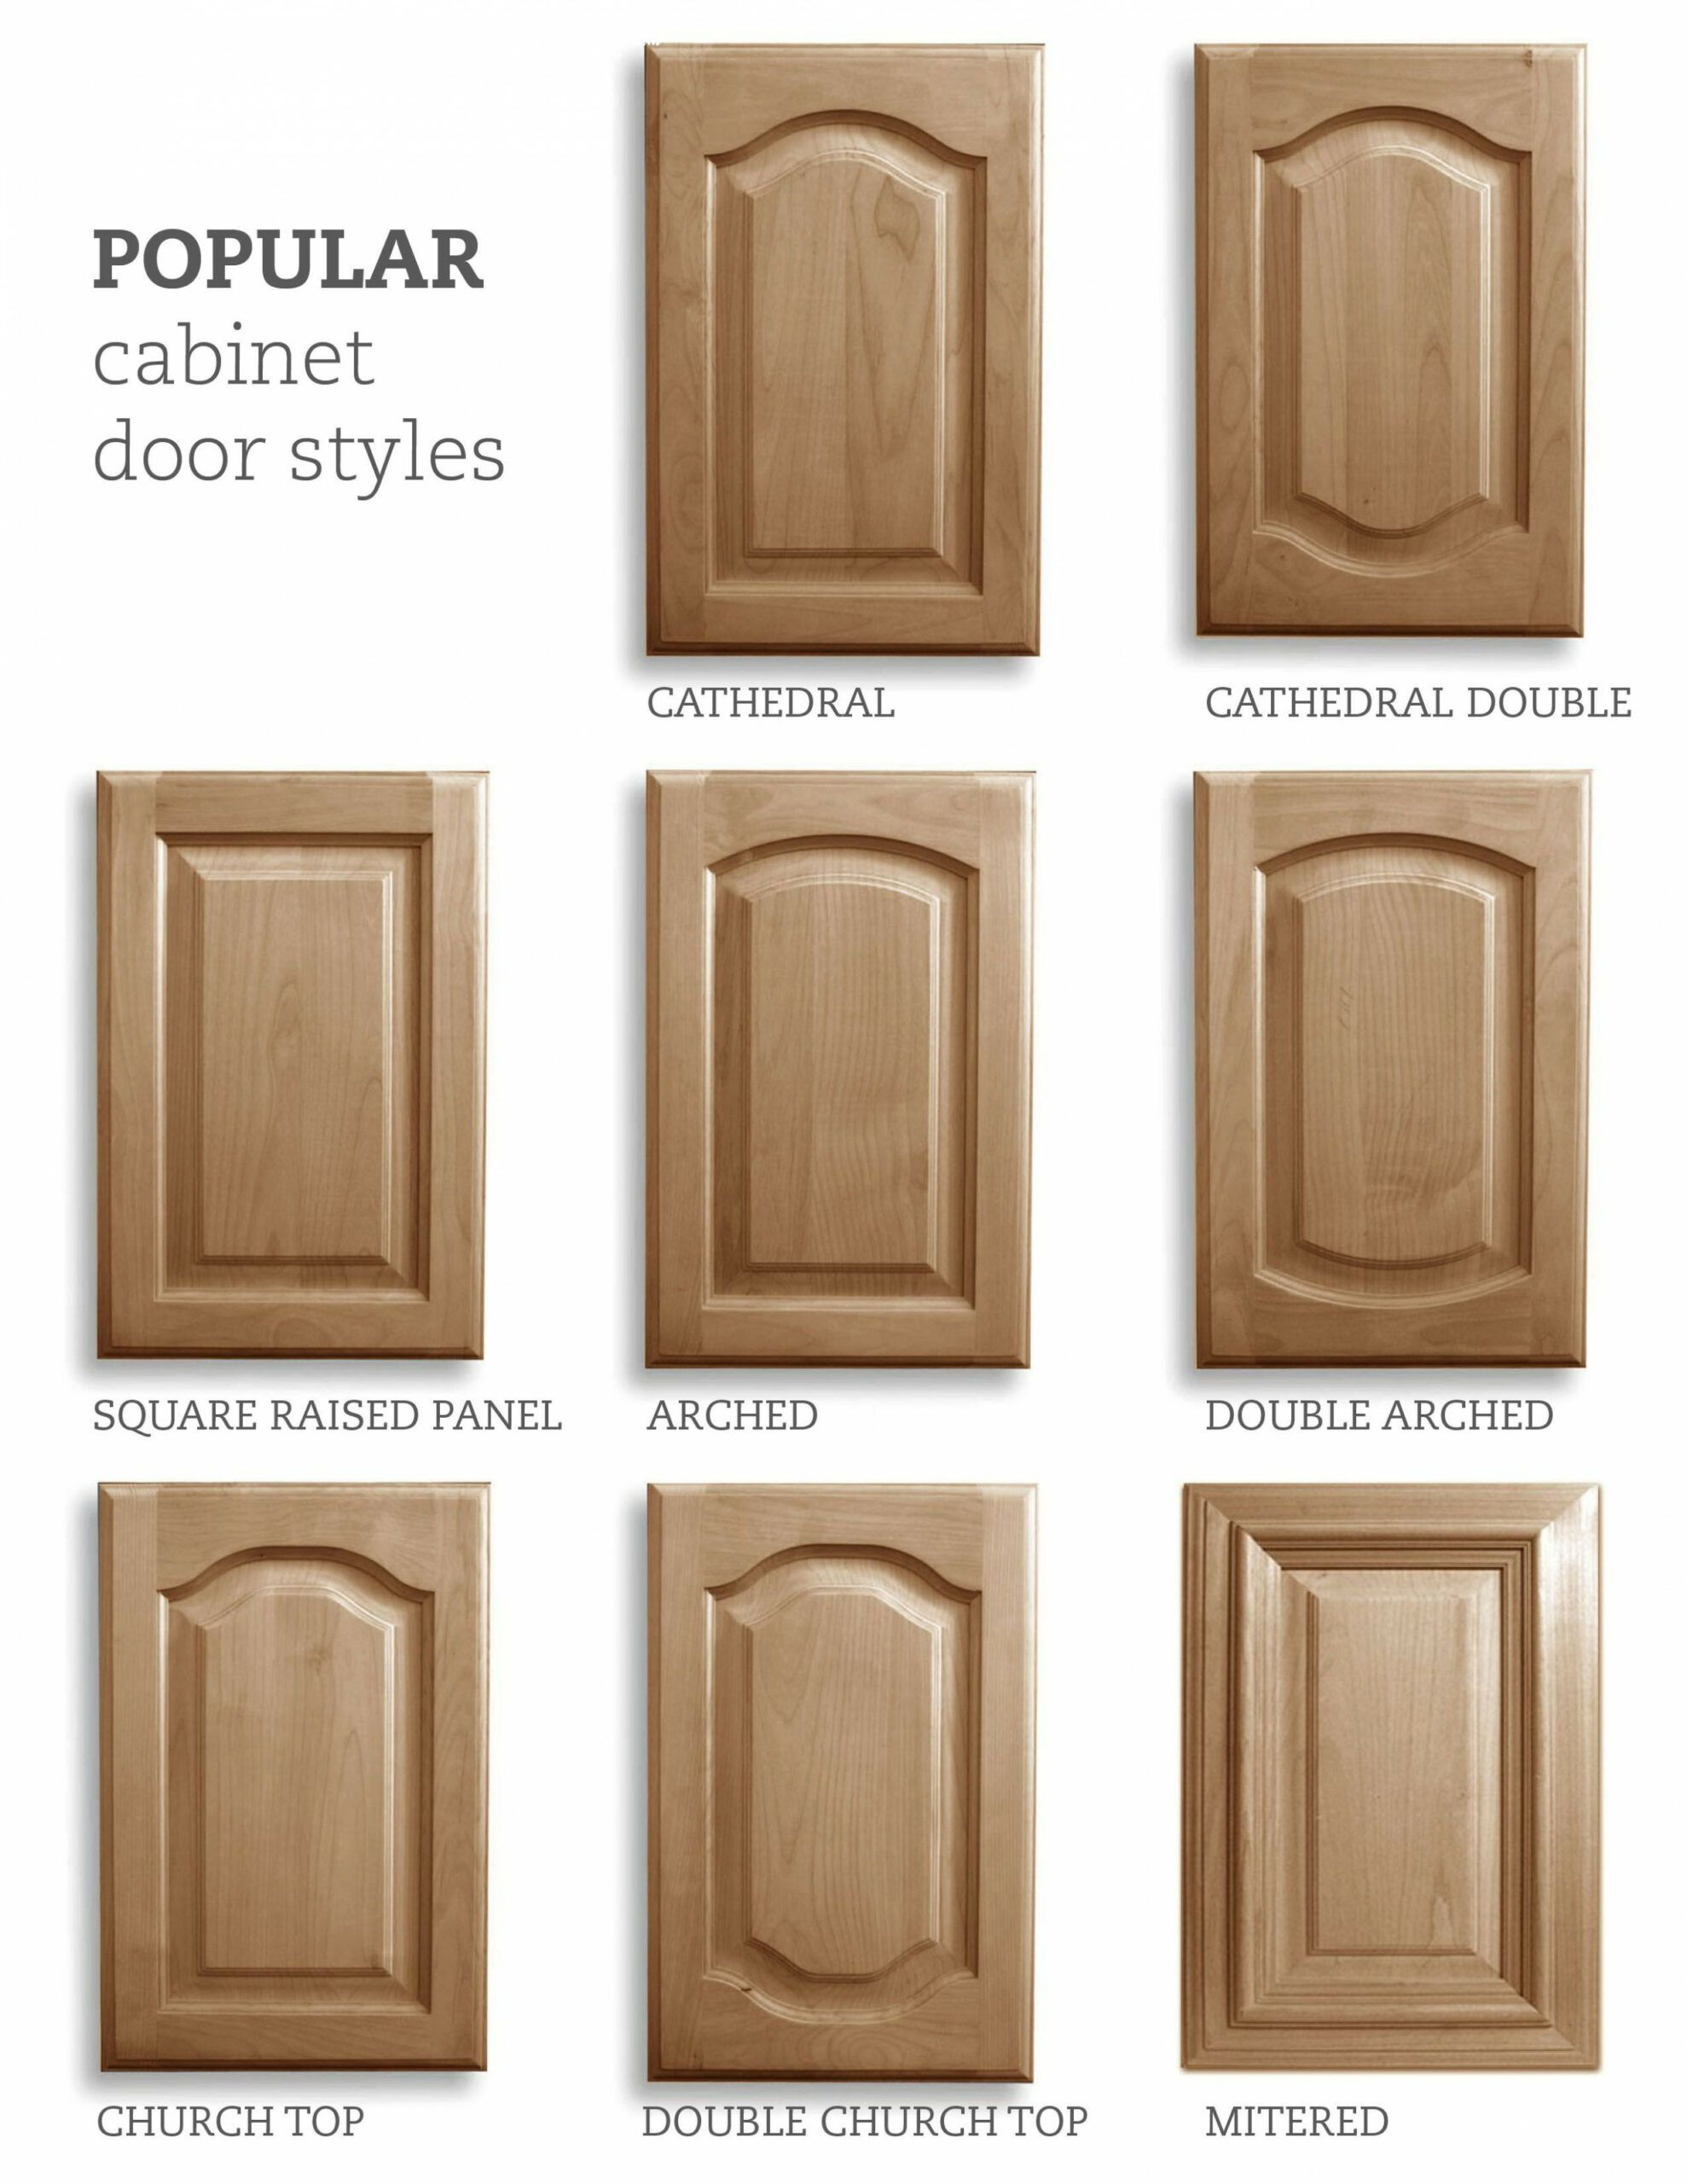 Where To Buy Replacement Kitchen Cabinet Doors Cathedral Cathedral In 2020 Kitchen Cabinet Door Styles Cabinet Door Styles Types Of Kitchen Cabinets